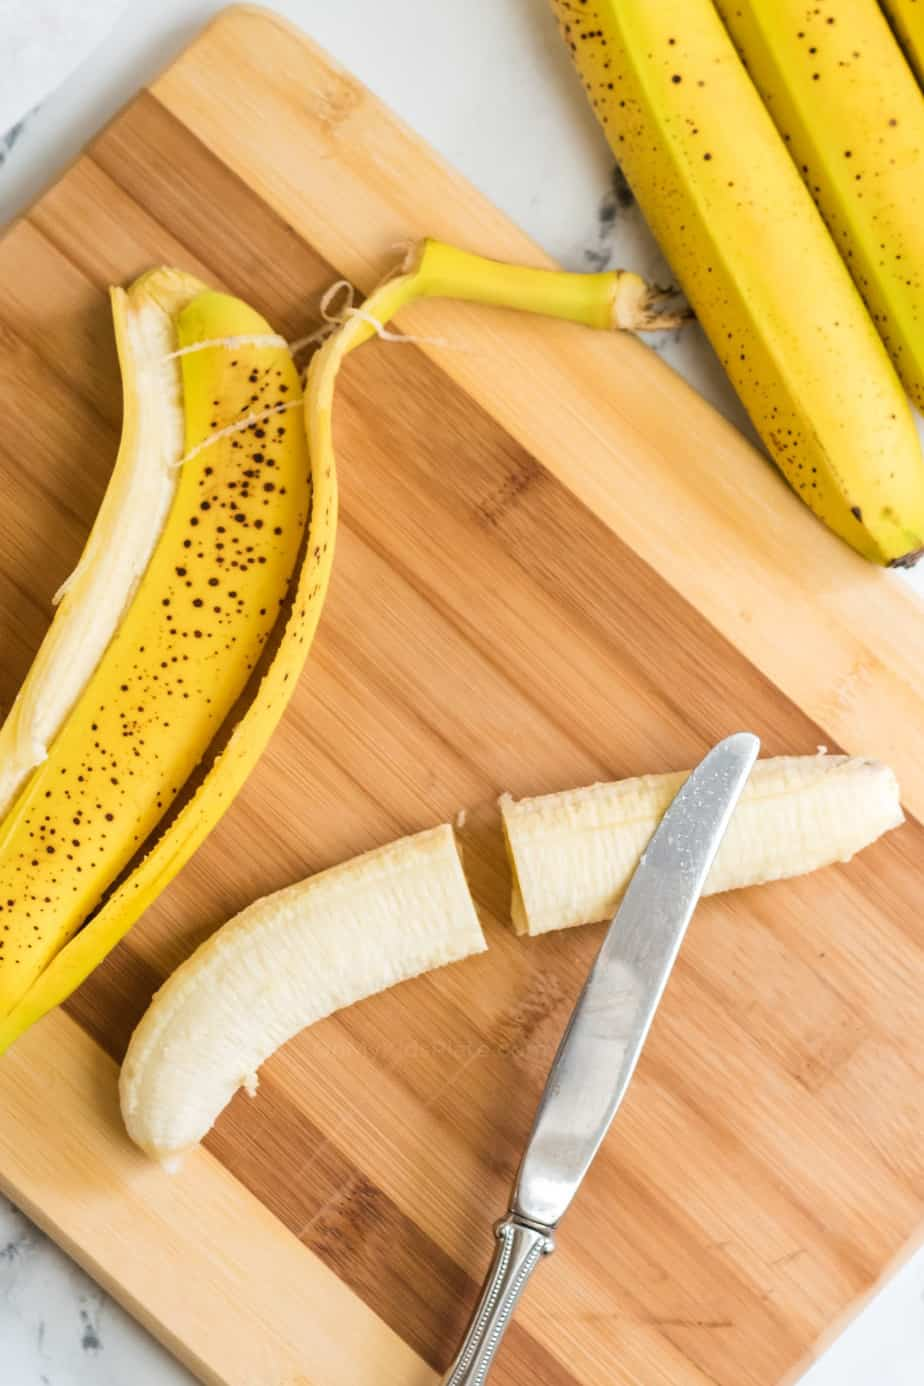 Banana being sliced in half with a knife on a cutting board next to the peel and more bananas